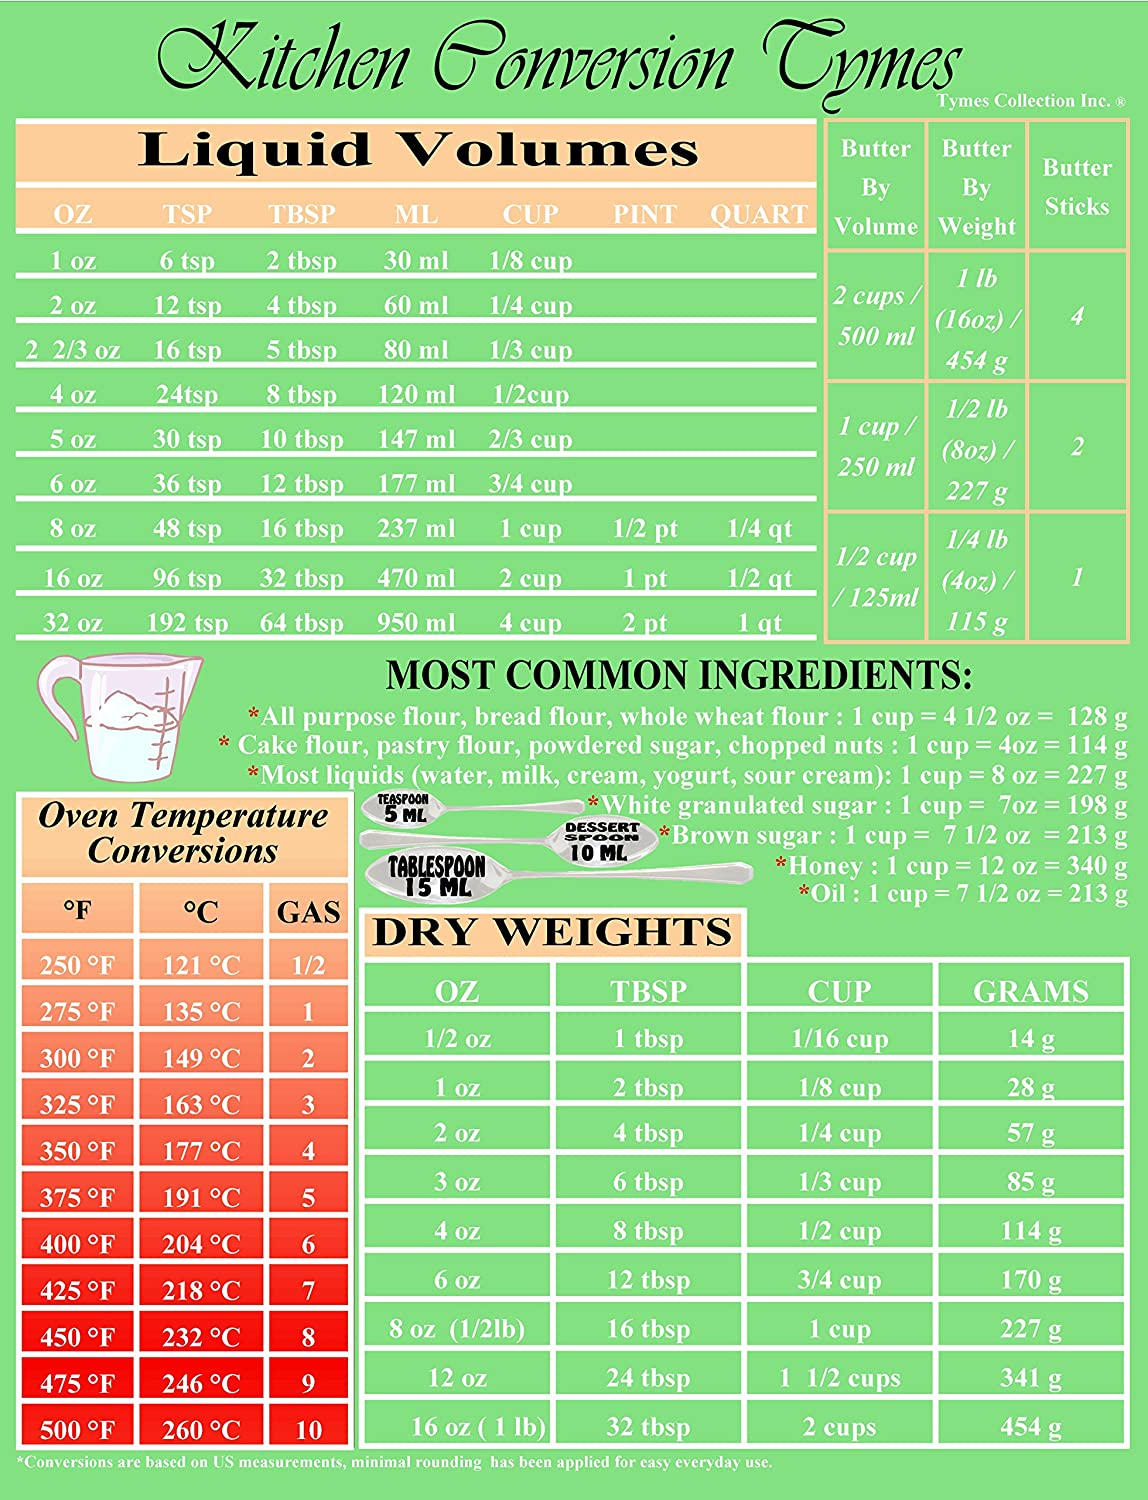 """Magnetic Kitchen Conversion chart 8"""" X 10.5"""" WaterPROOF Refrigerator Magnet. Convert Metric, Imperial, Weight, Liquid, Temperature for all your Cooking/Baking Needs!! Made in USA (Green/Beige)"""